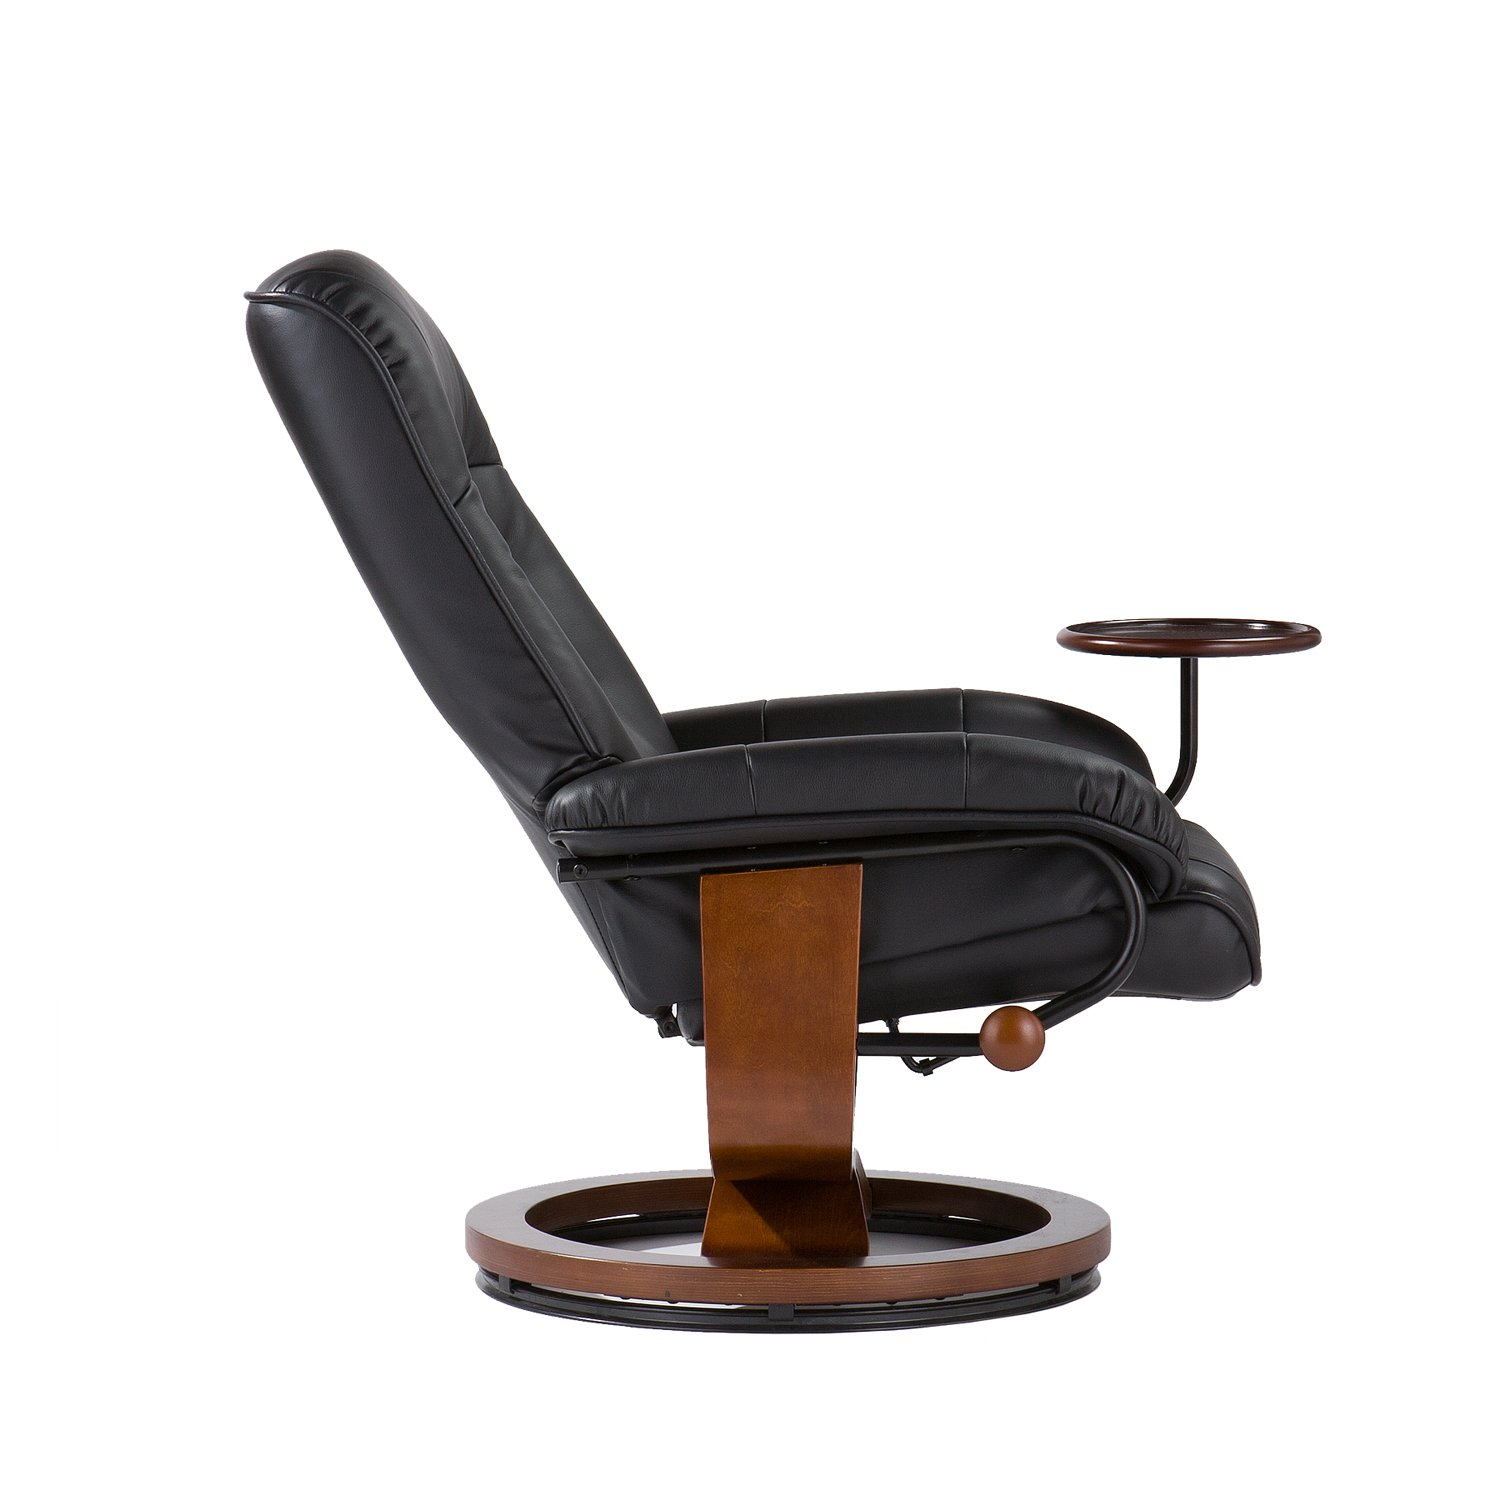 office recliner chair revolving in nepal adjustable black leather and ottoman